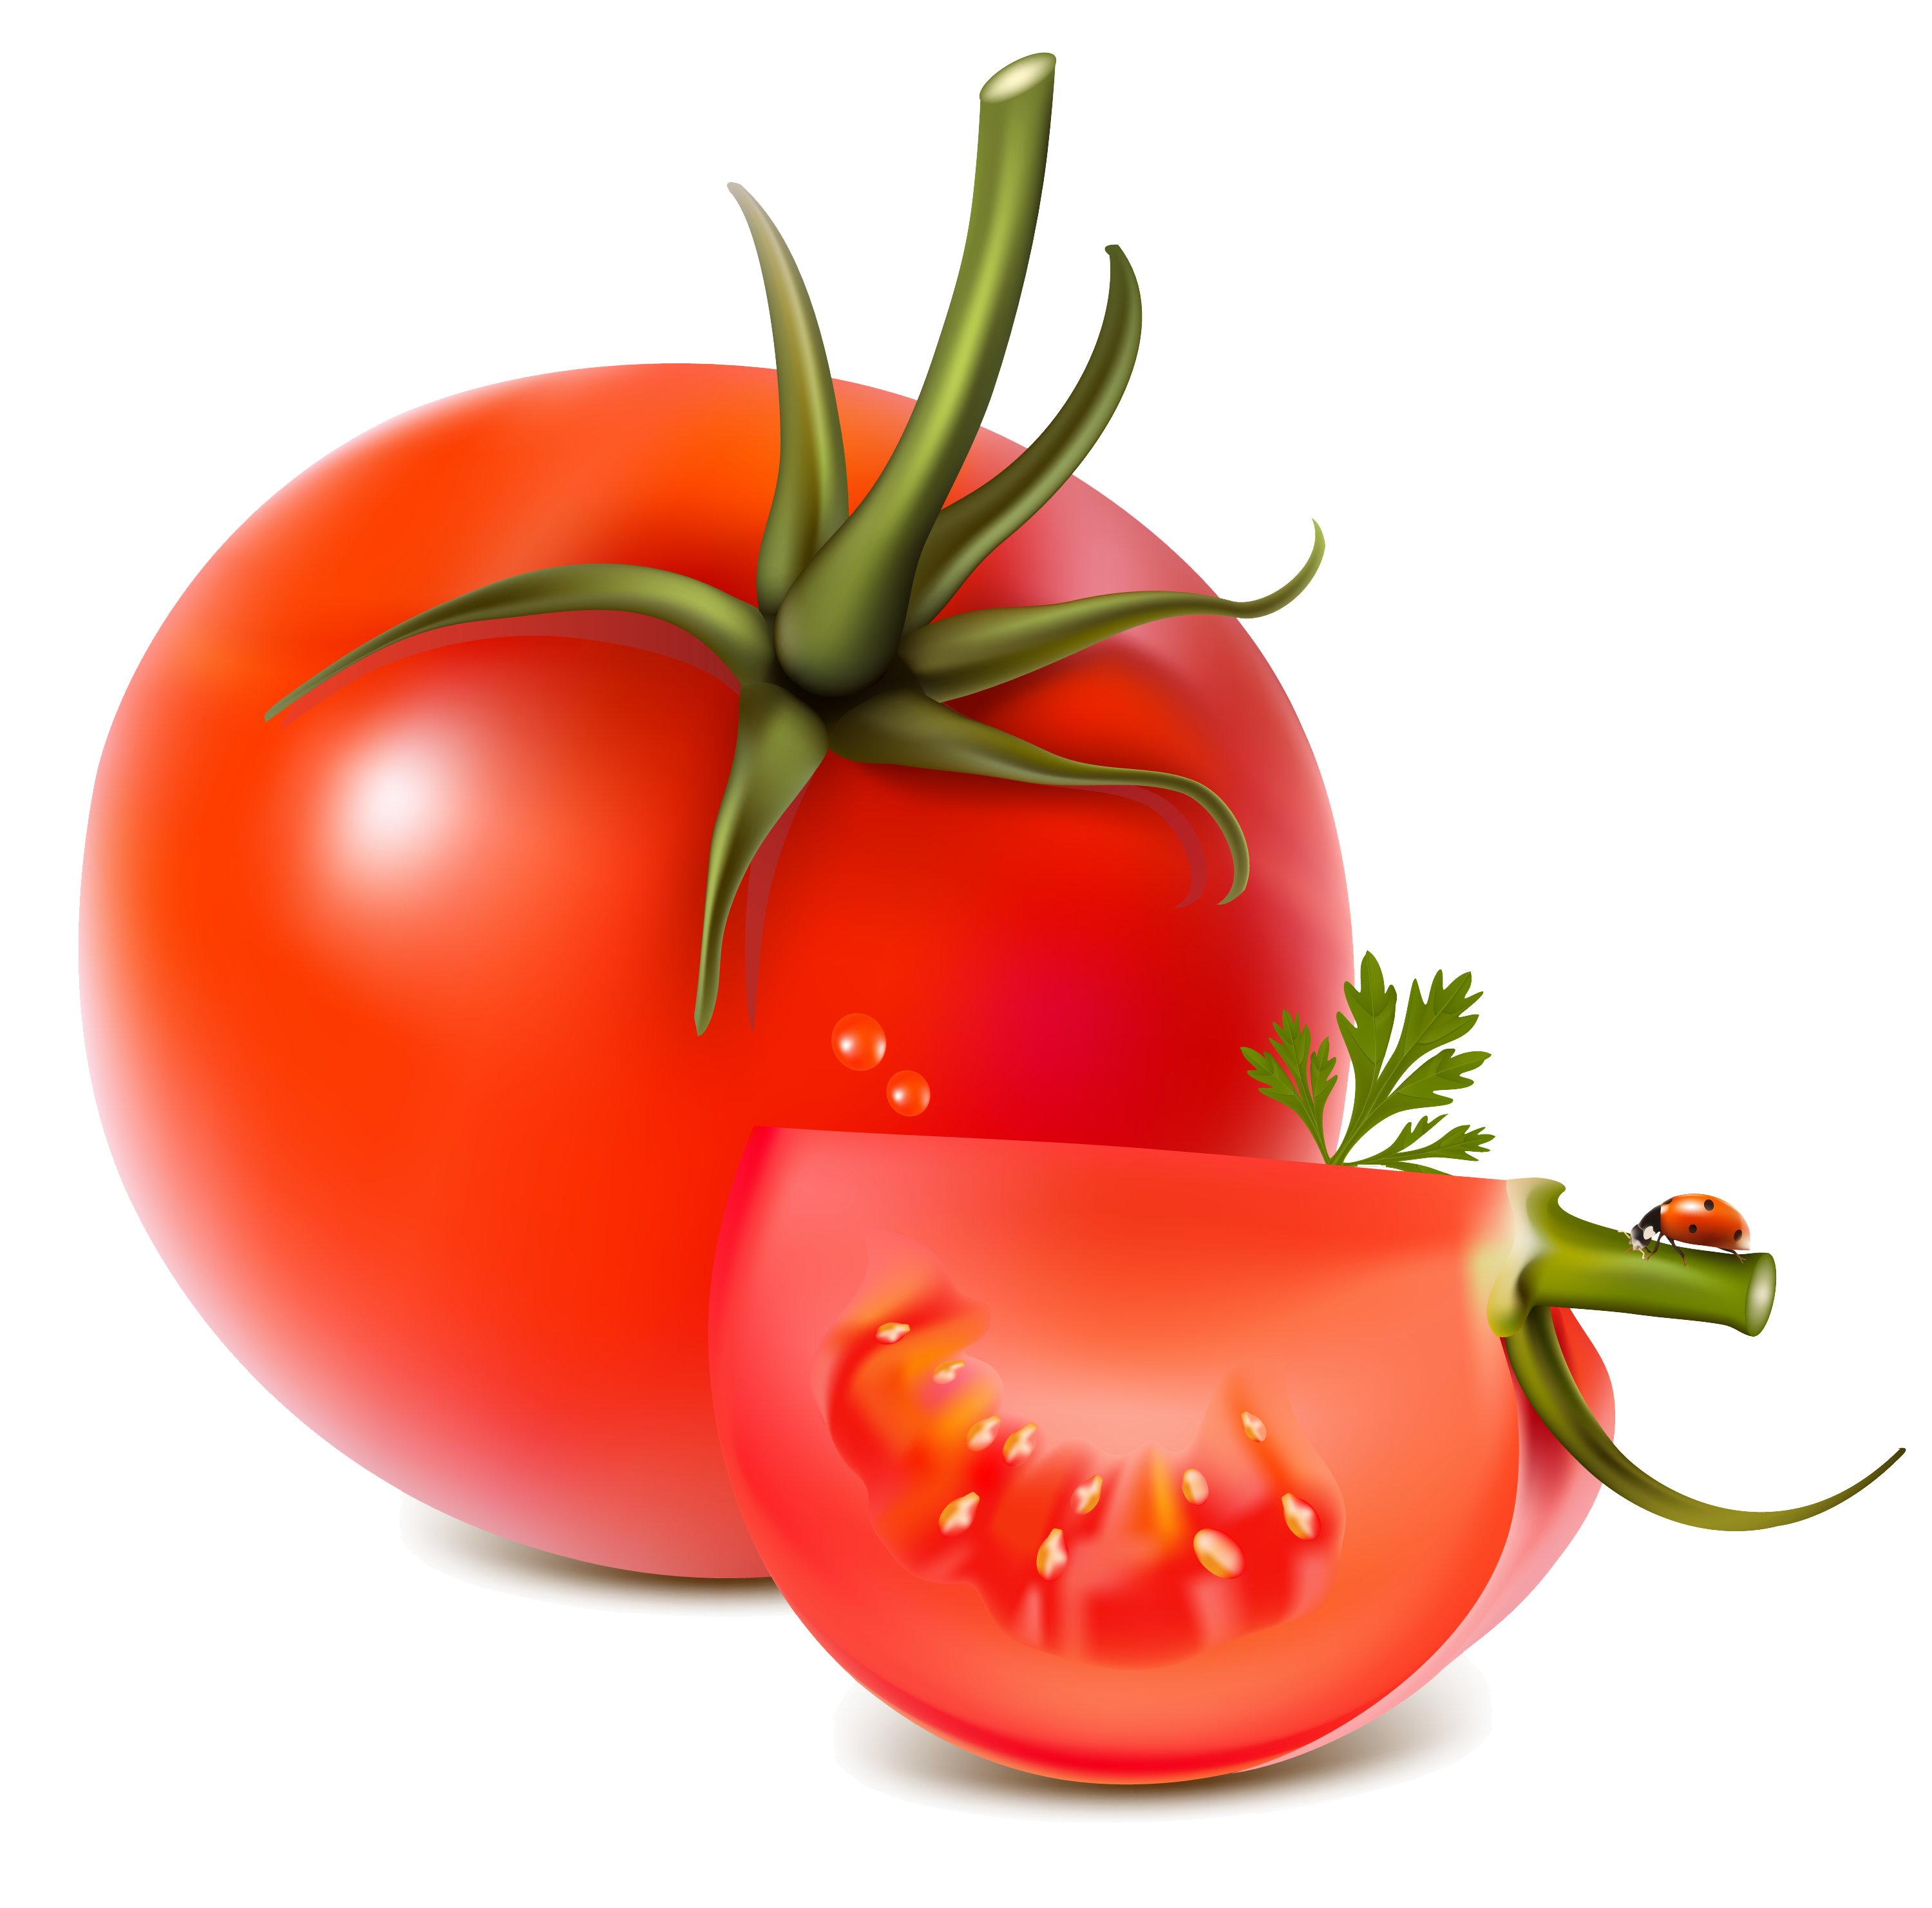 Pin by hopeless on. Tomatoes clipart tomato fruit